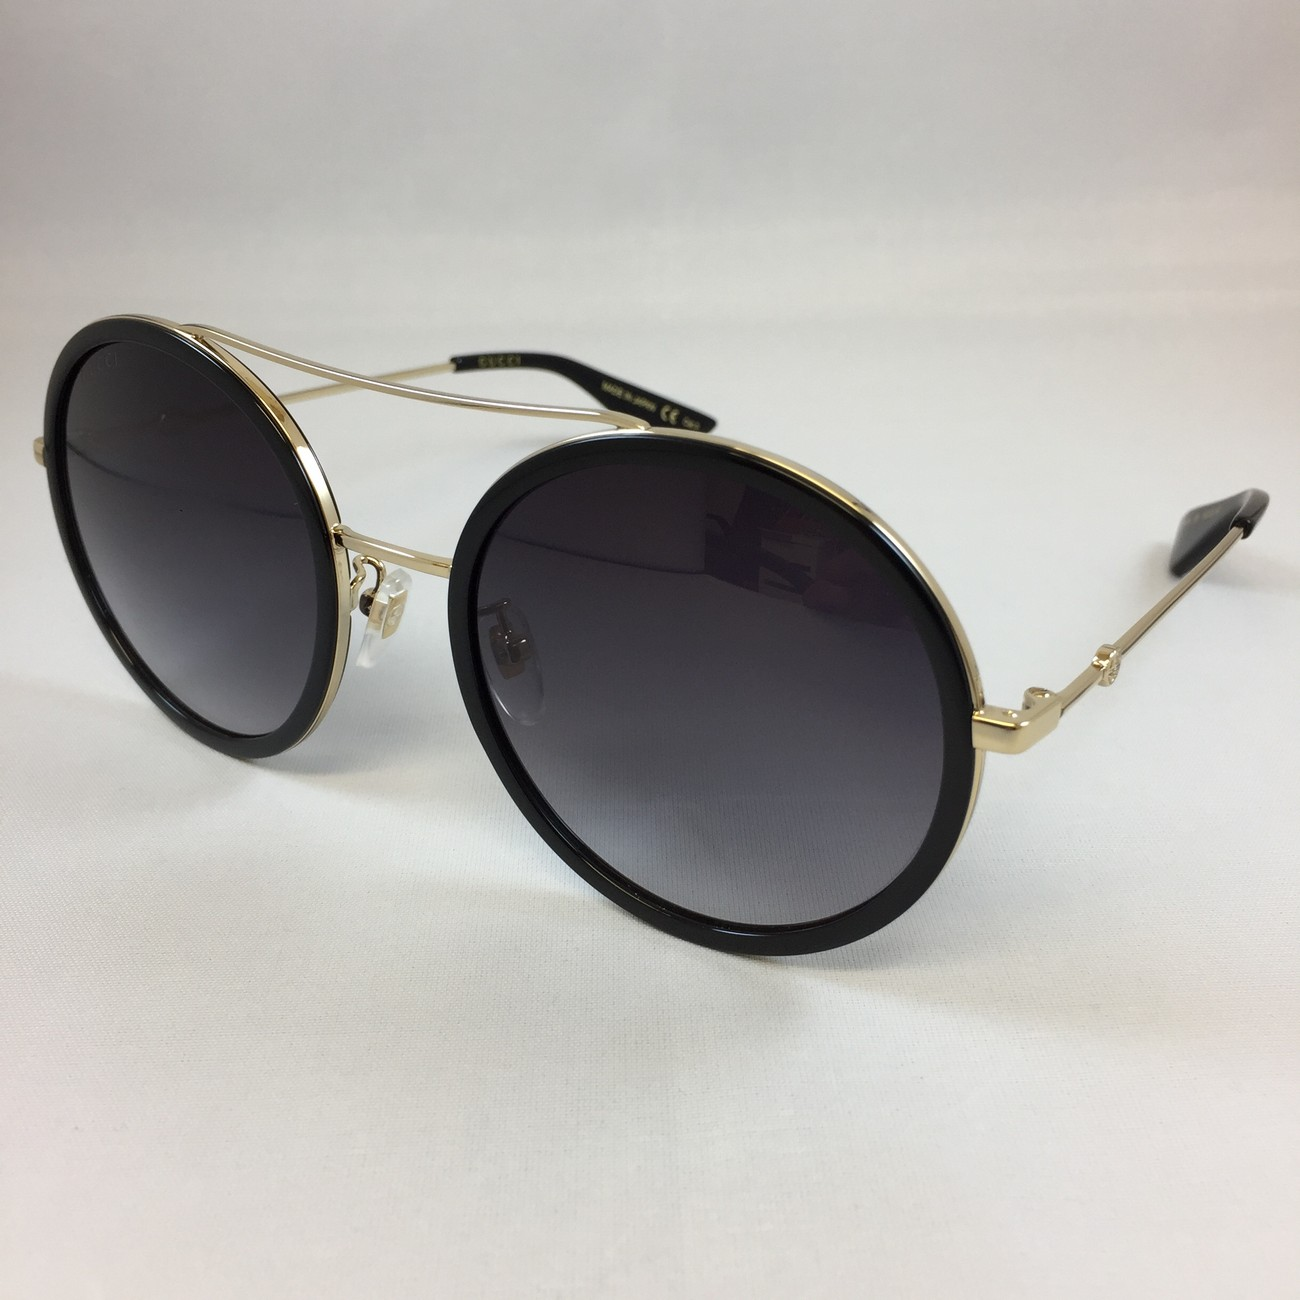 Gucci GG0061S 001 gold